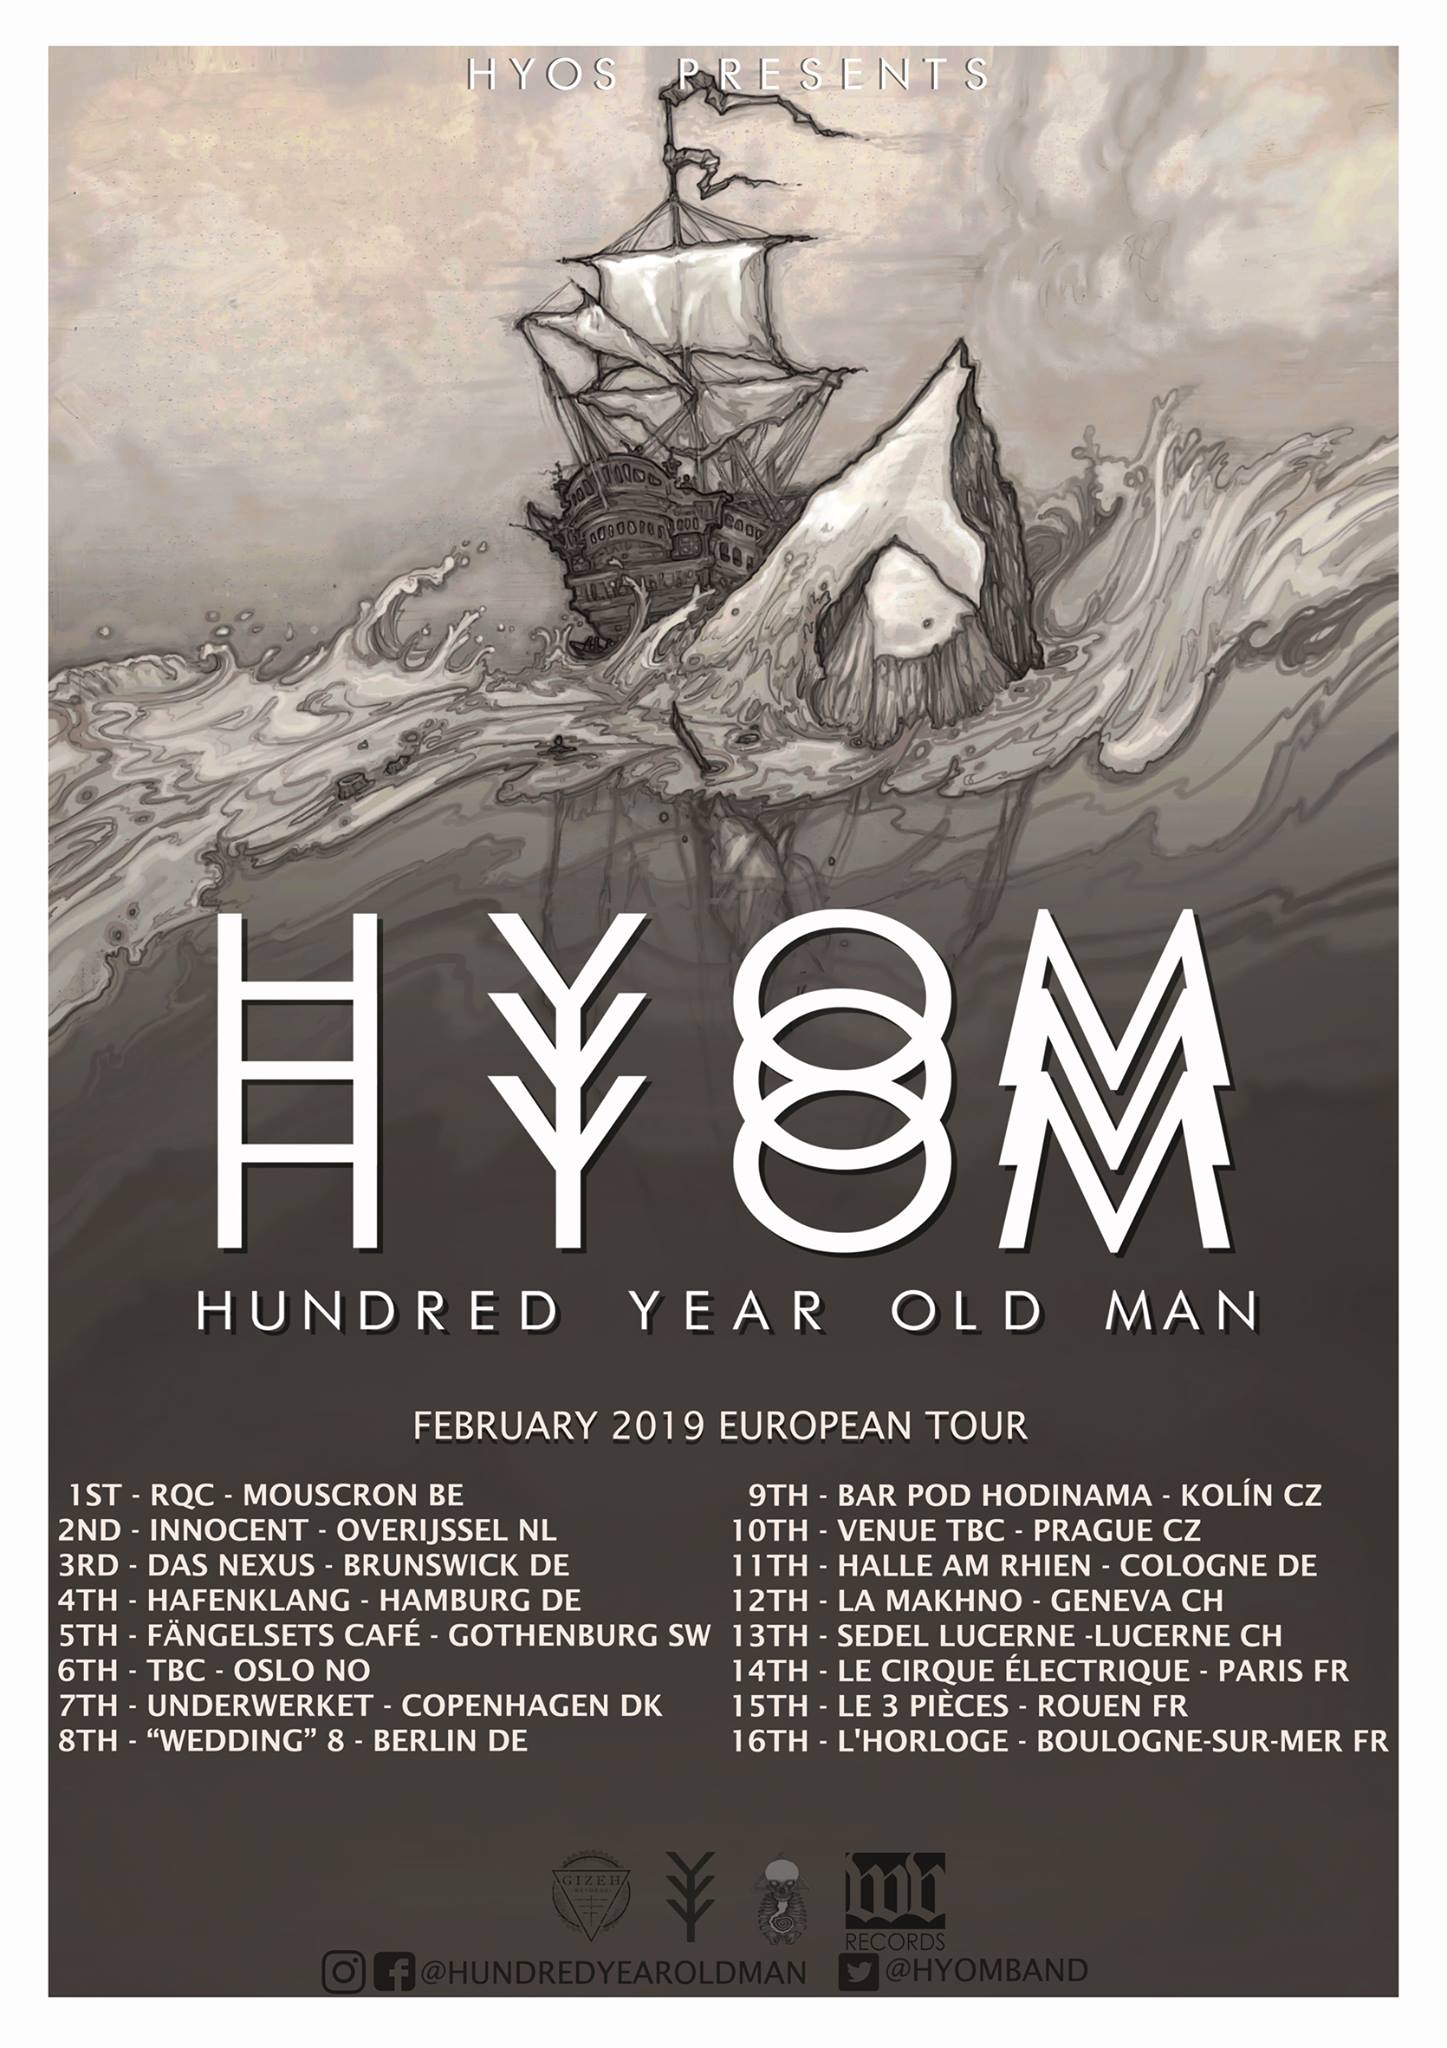 Hundred Year Old Man tour